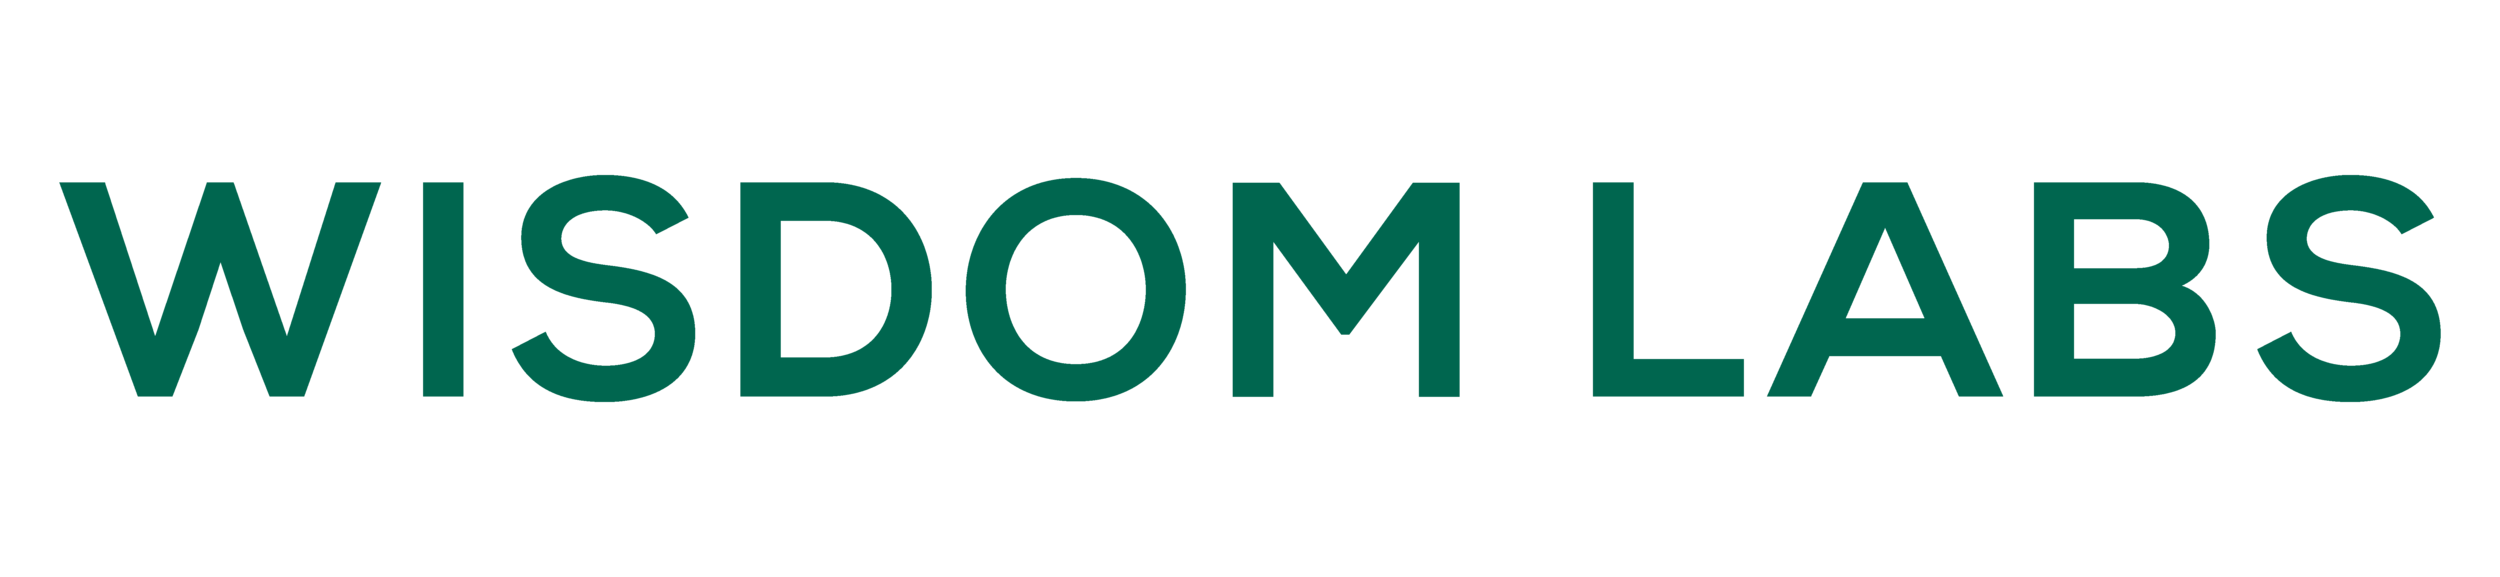 wisdom_labs-Wordmark-Teal-01.png